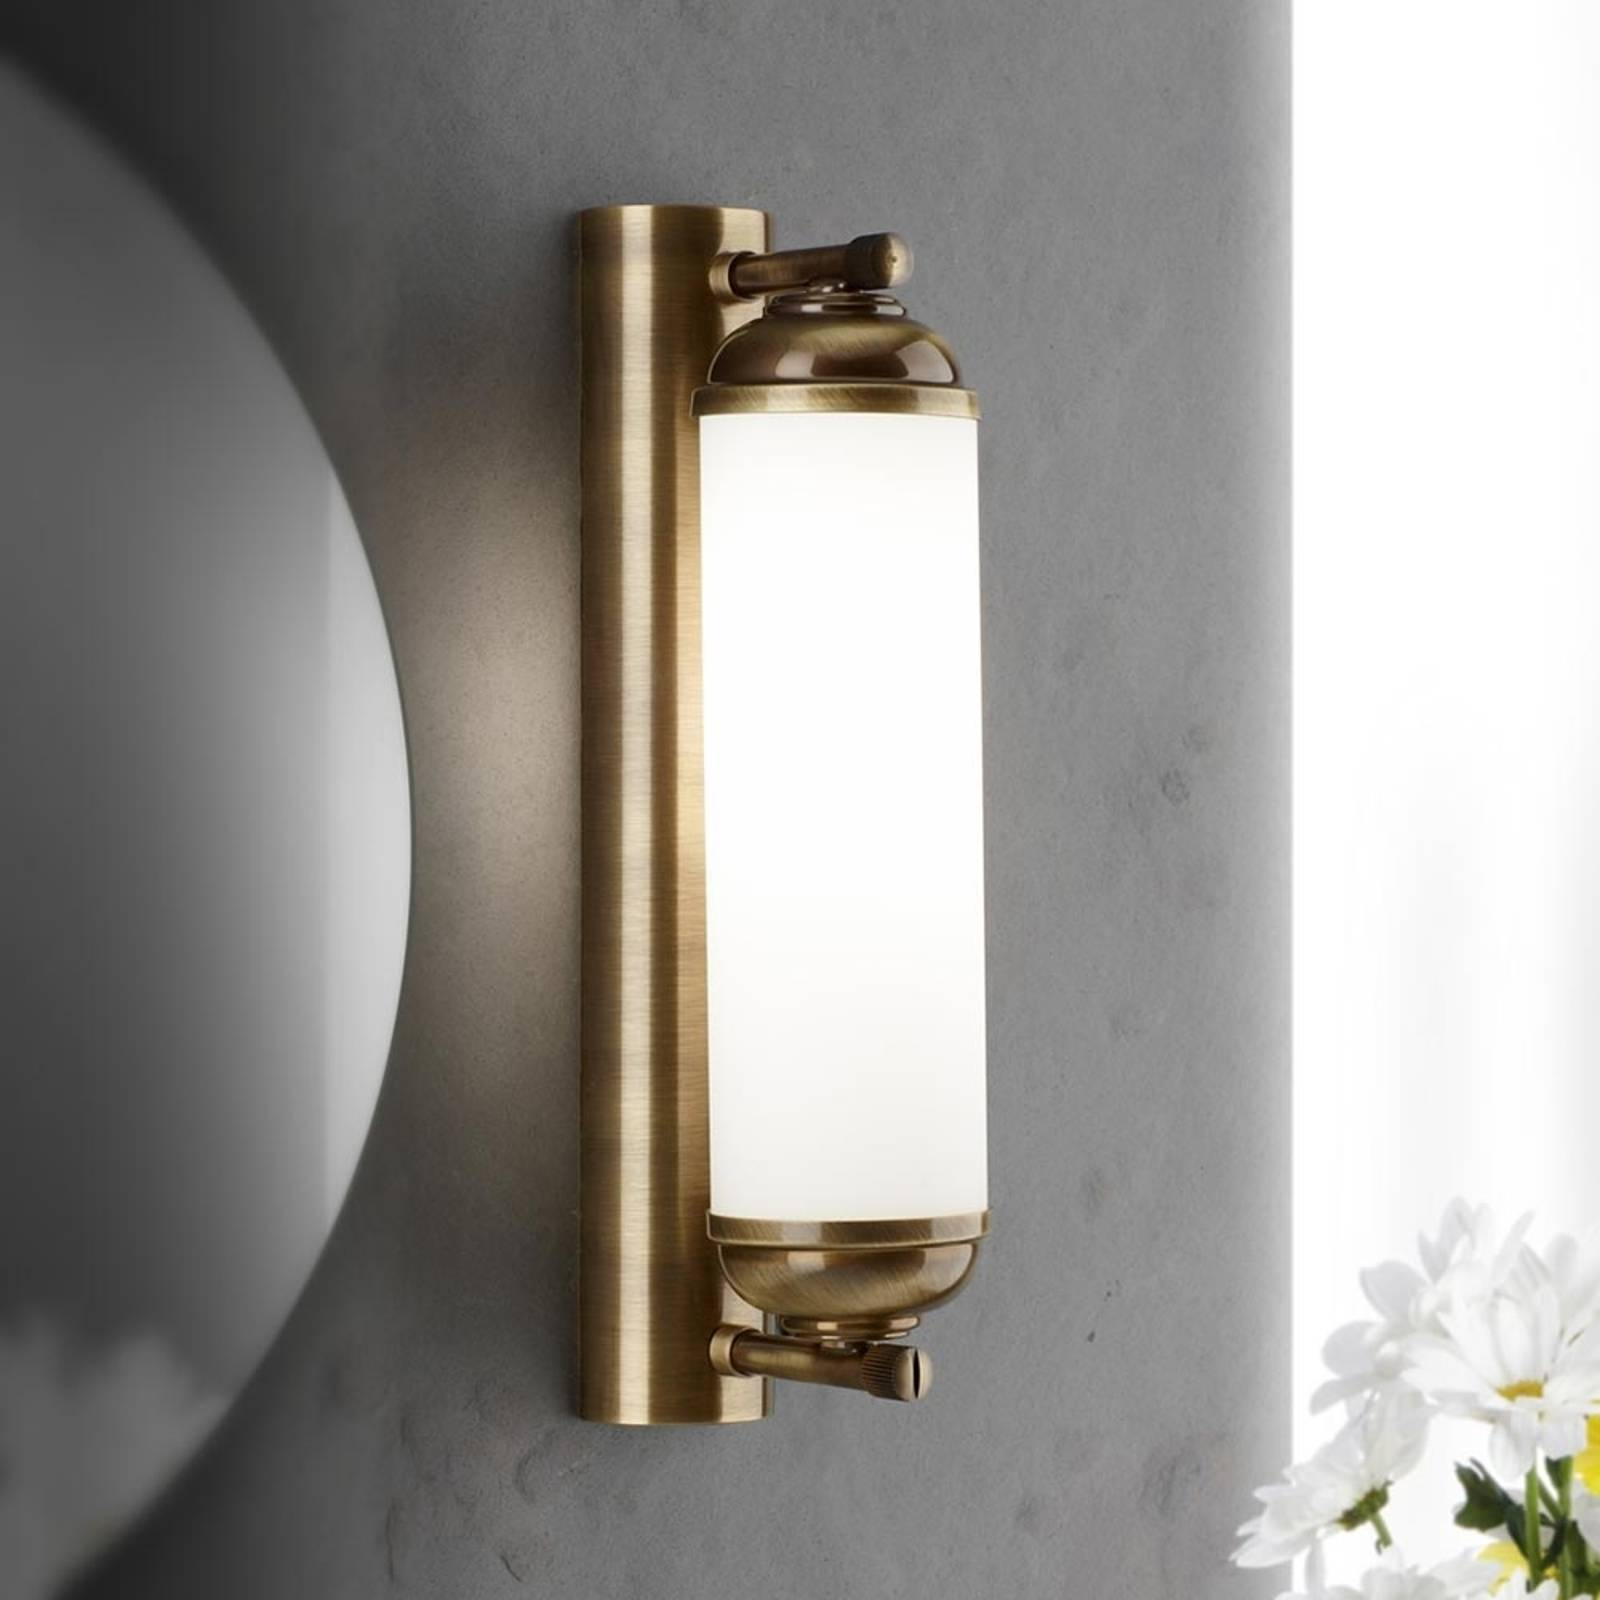 Elida Wall Light High-Quality Single Bulb from Orion